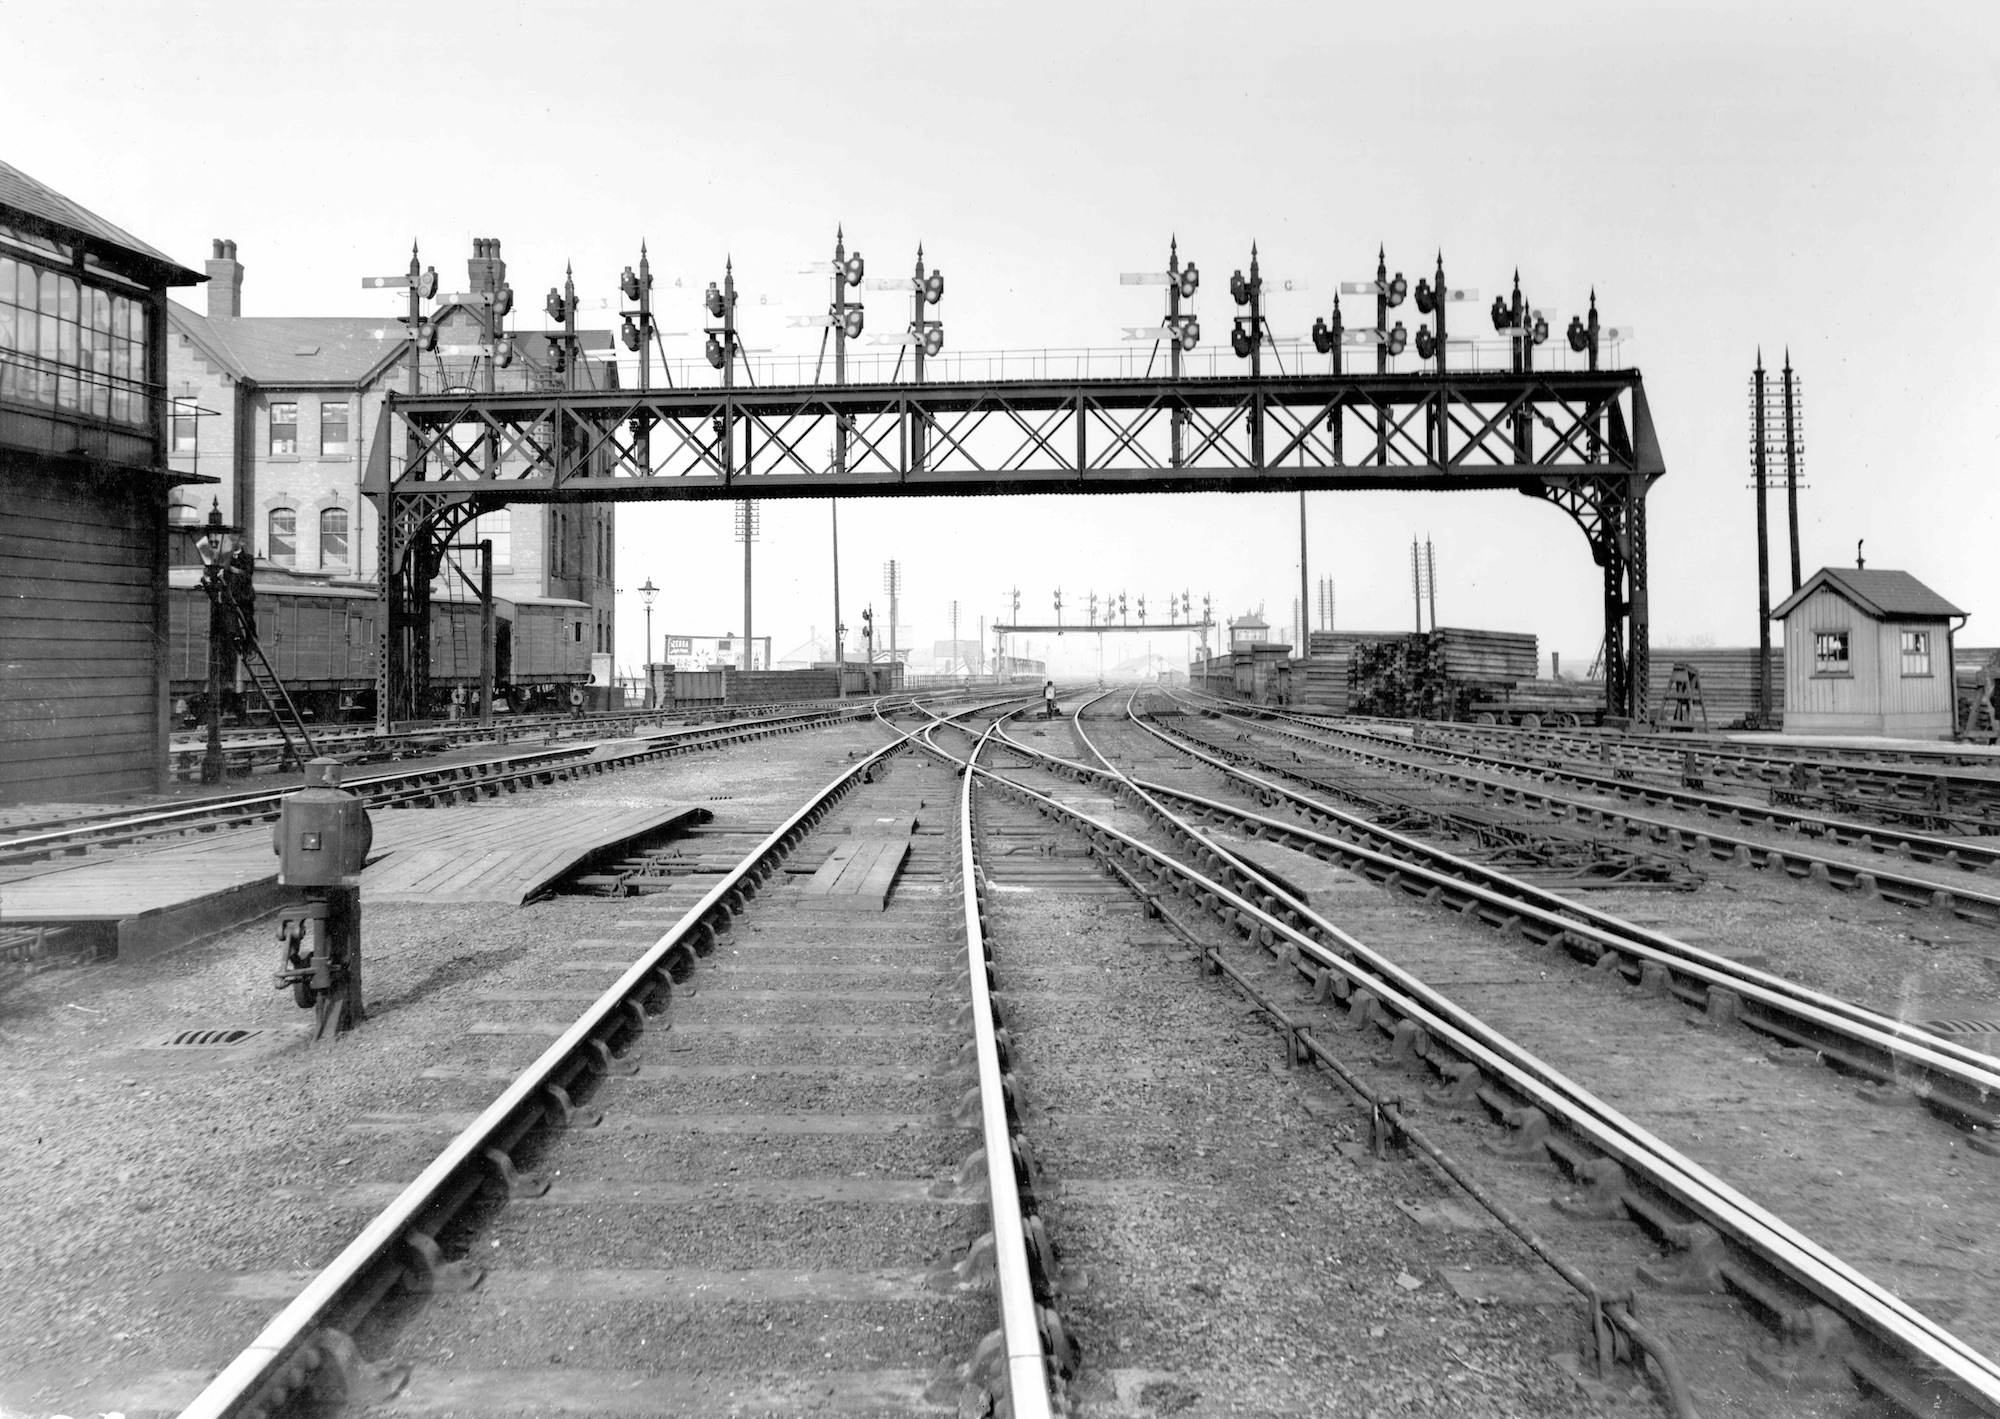 Allied to the demise of the Derby PSB, all the 1969 signaling nad track layout has been comprehensively modernised. This view of the north end of the station wouldn't be recognisabler were it not for the surviving MR Engineer's Offices to the left.